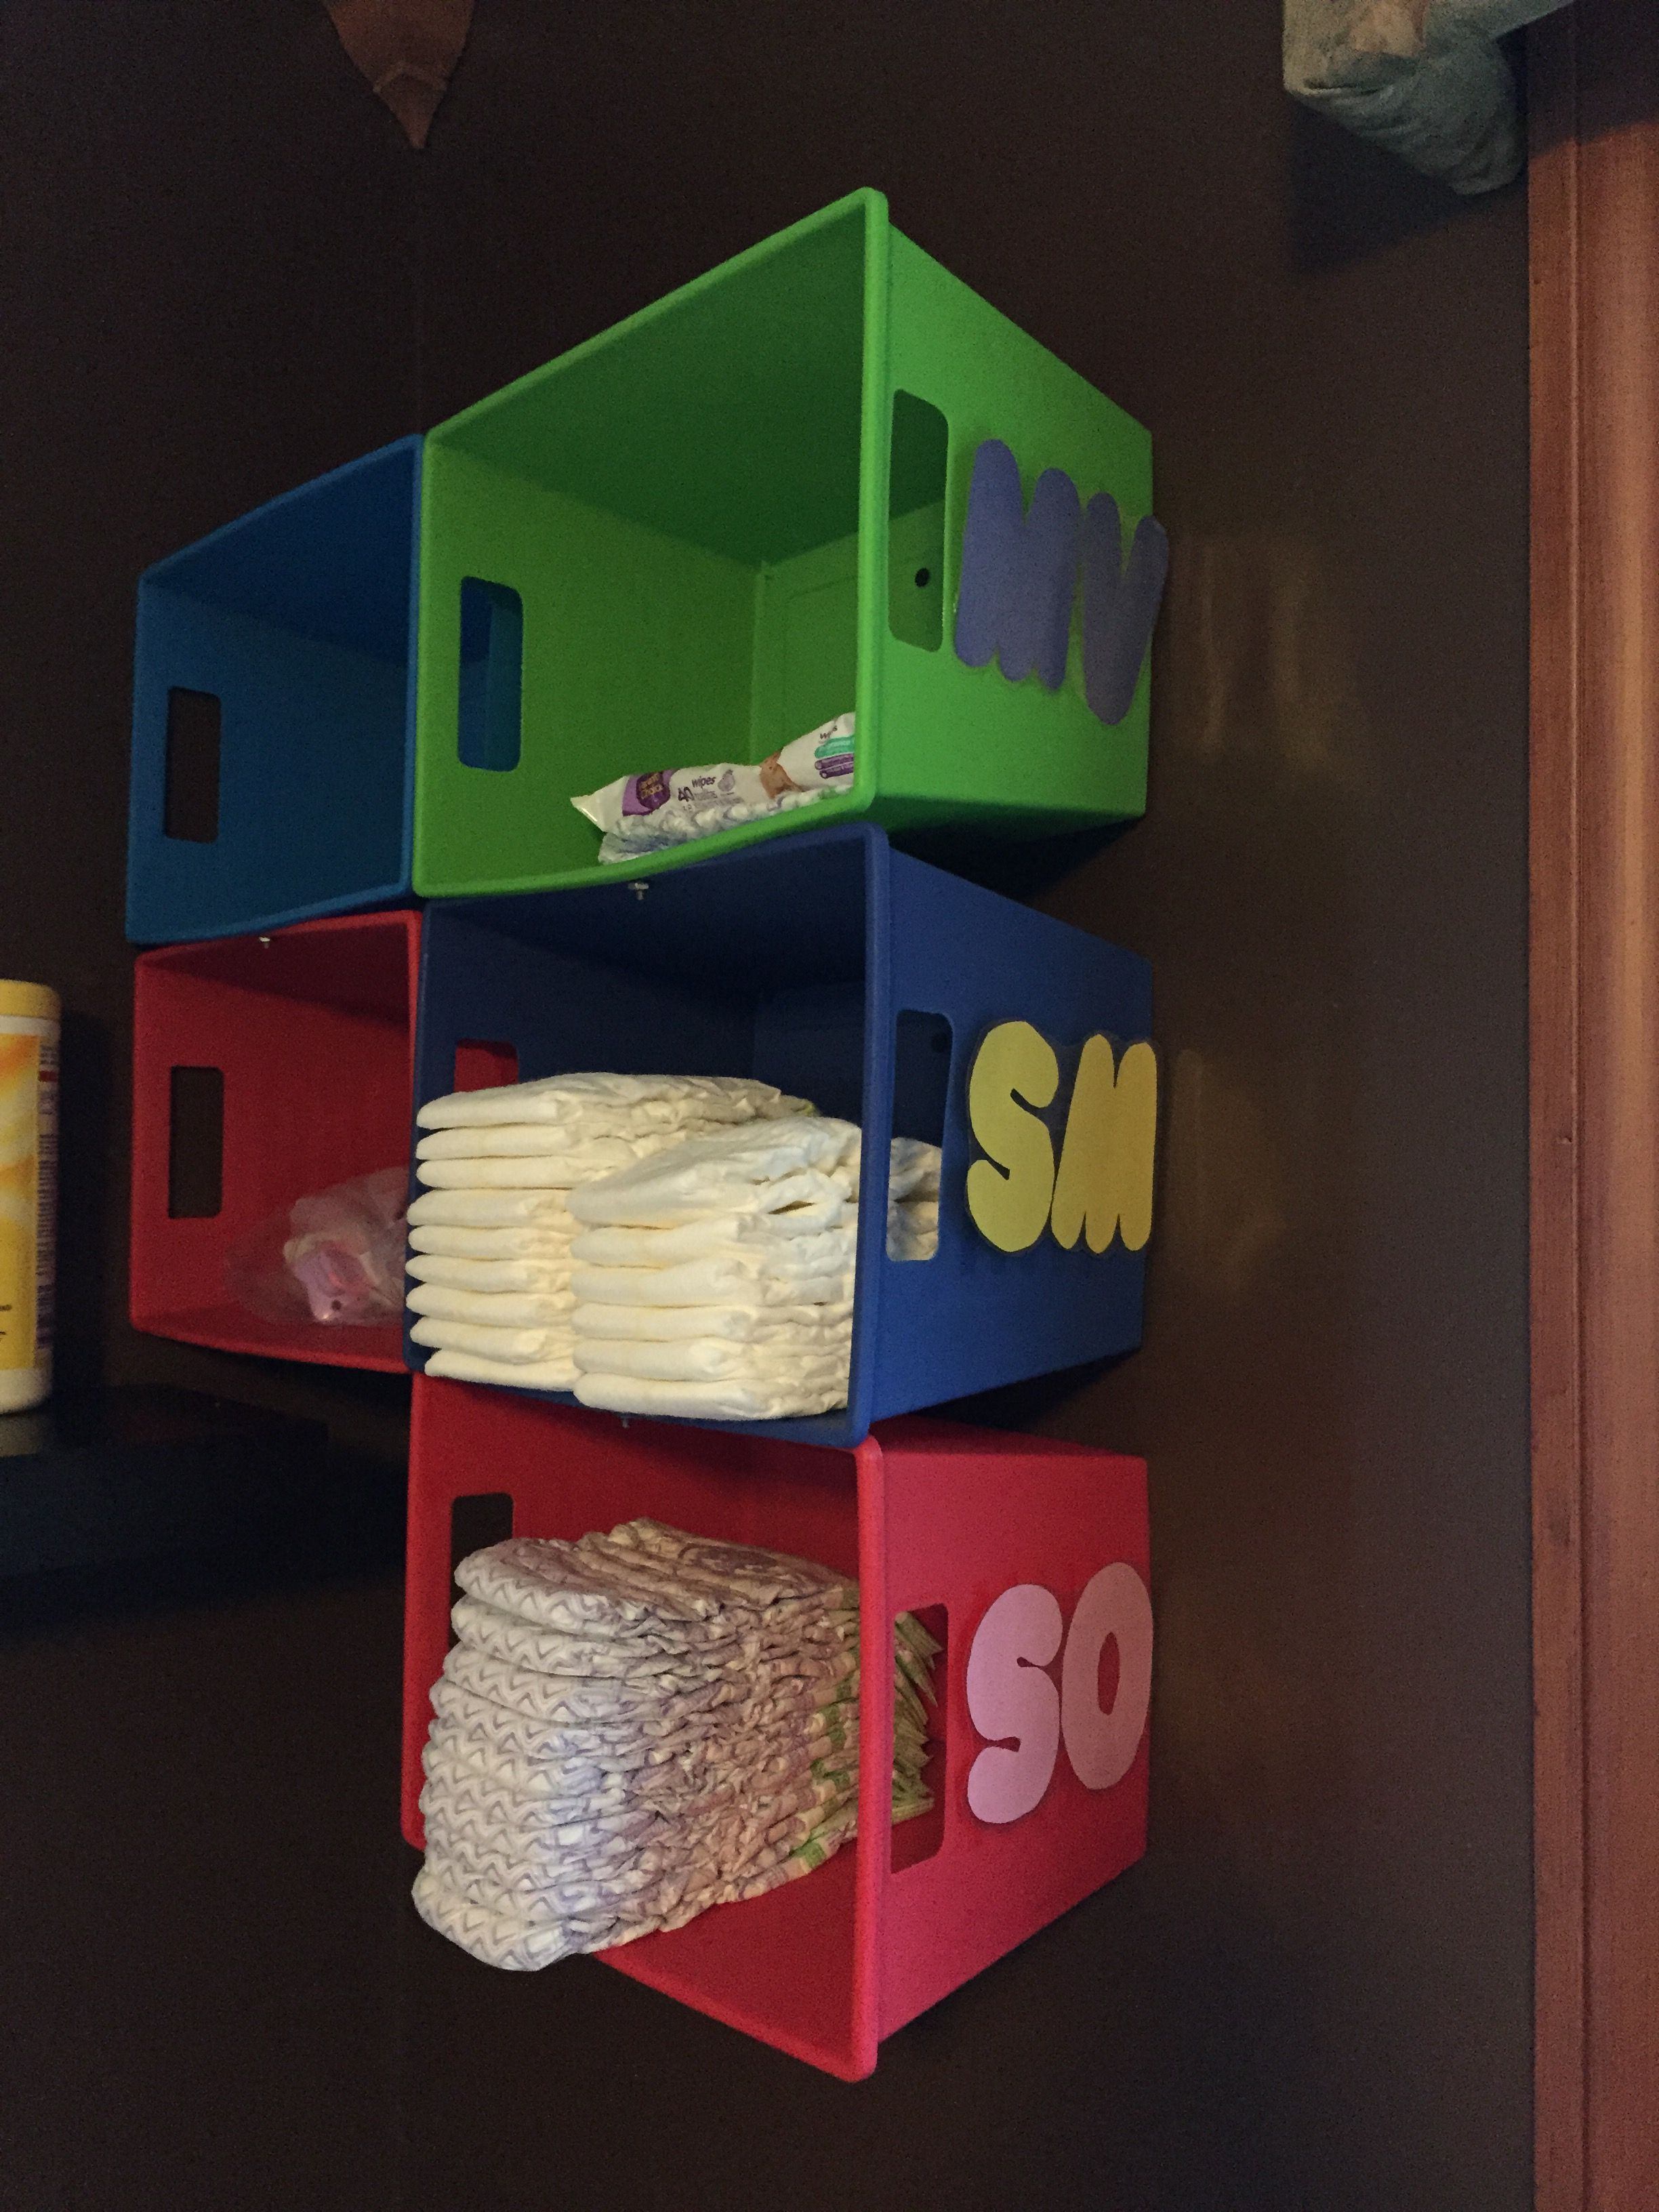 Inexpensive Diaper Cubbies. These Are Made From Colorful Bins From The Dollar Store. Each Day